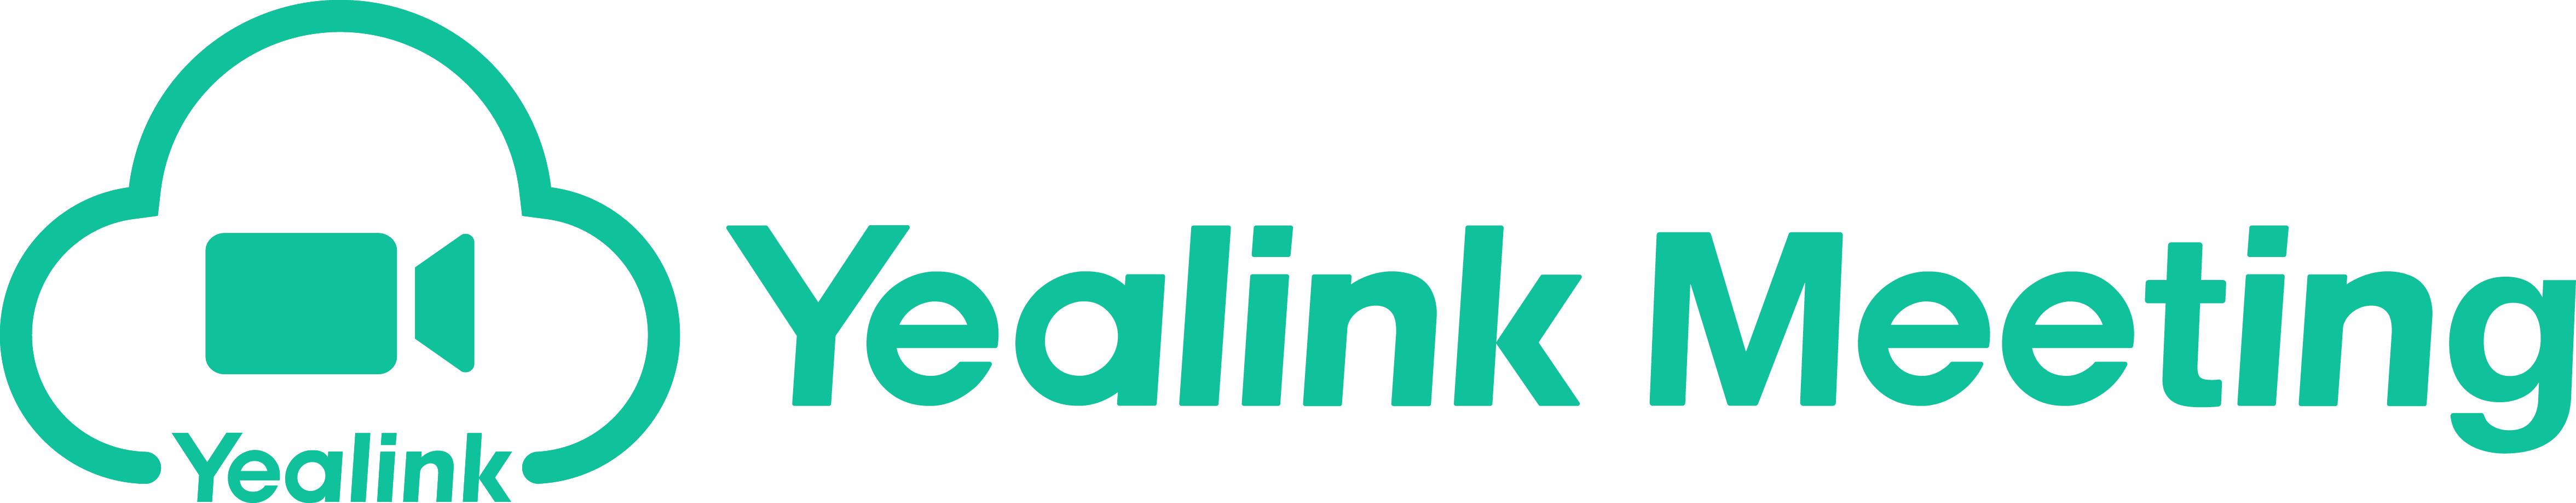 Yealink Meeting